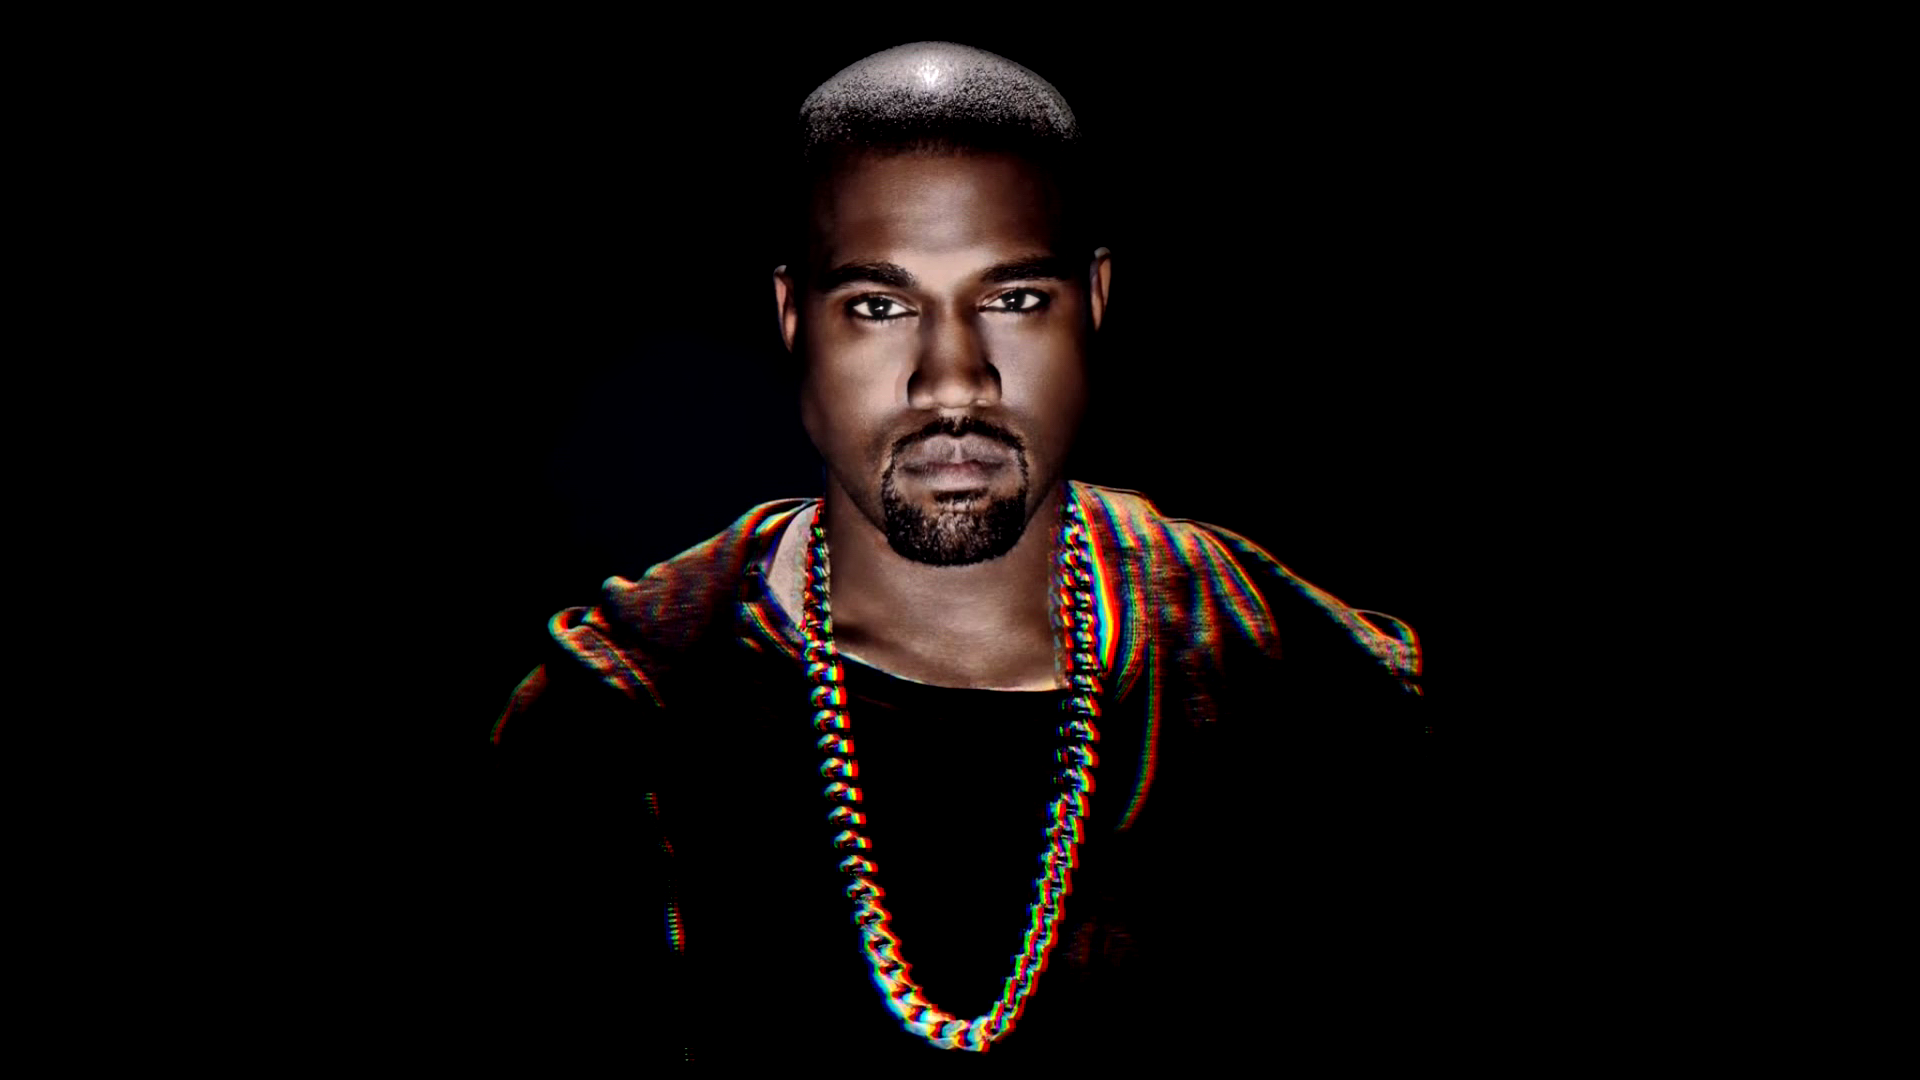 kanye west desktop wallpaper 59574